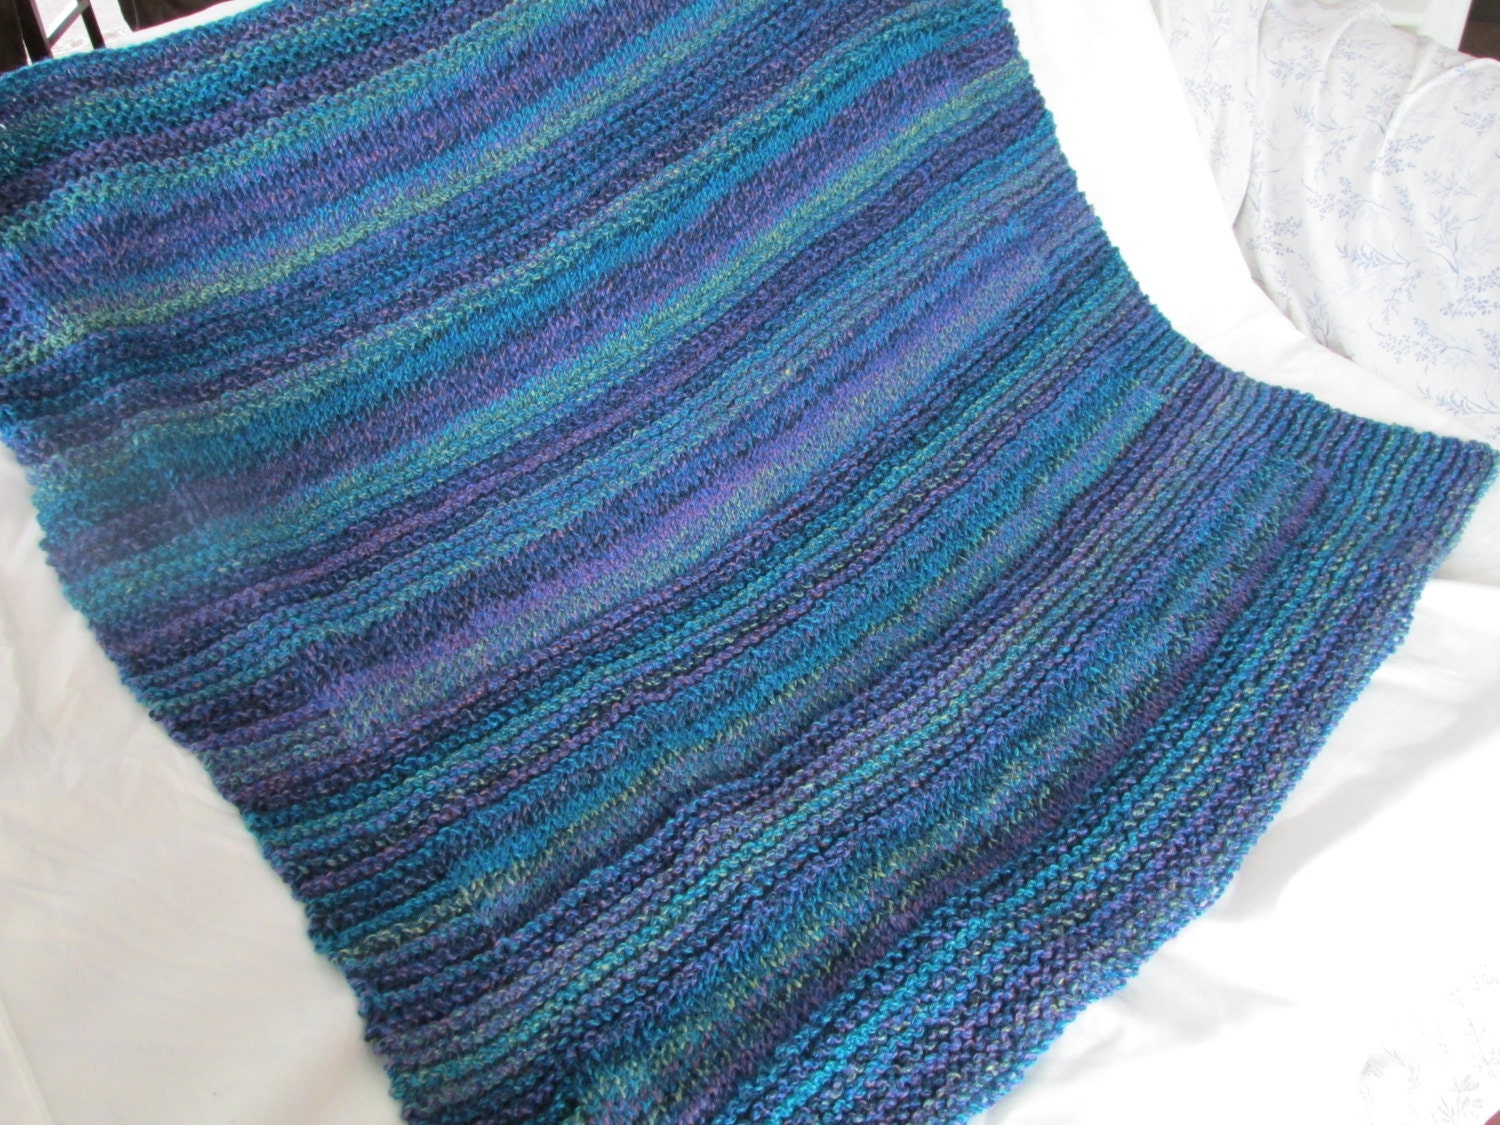 Knitted Lap Blanket Patterns : Marble Lap Blanket Knit Lap Blanket Chunky Knit Lap Blanket